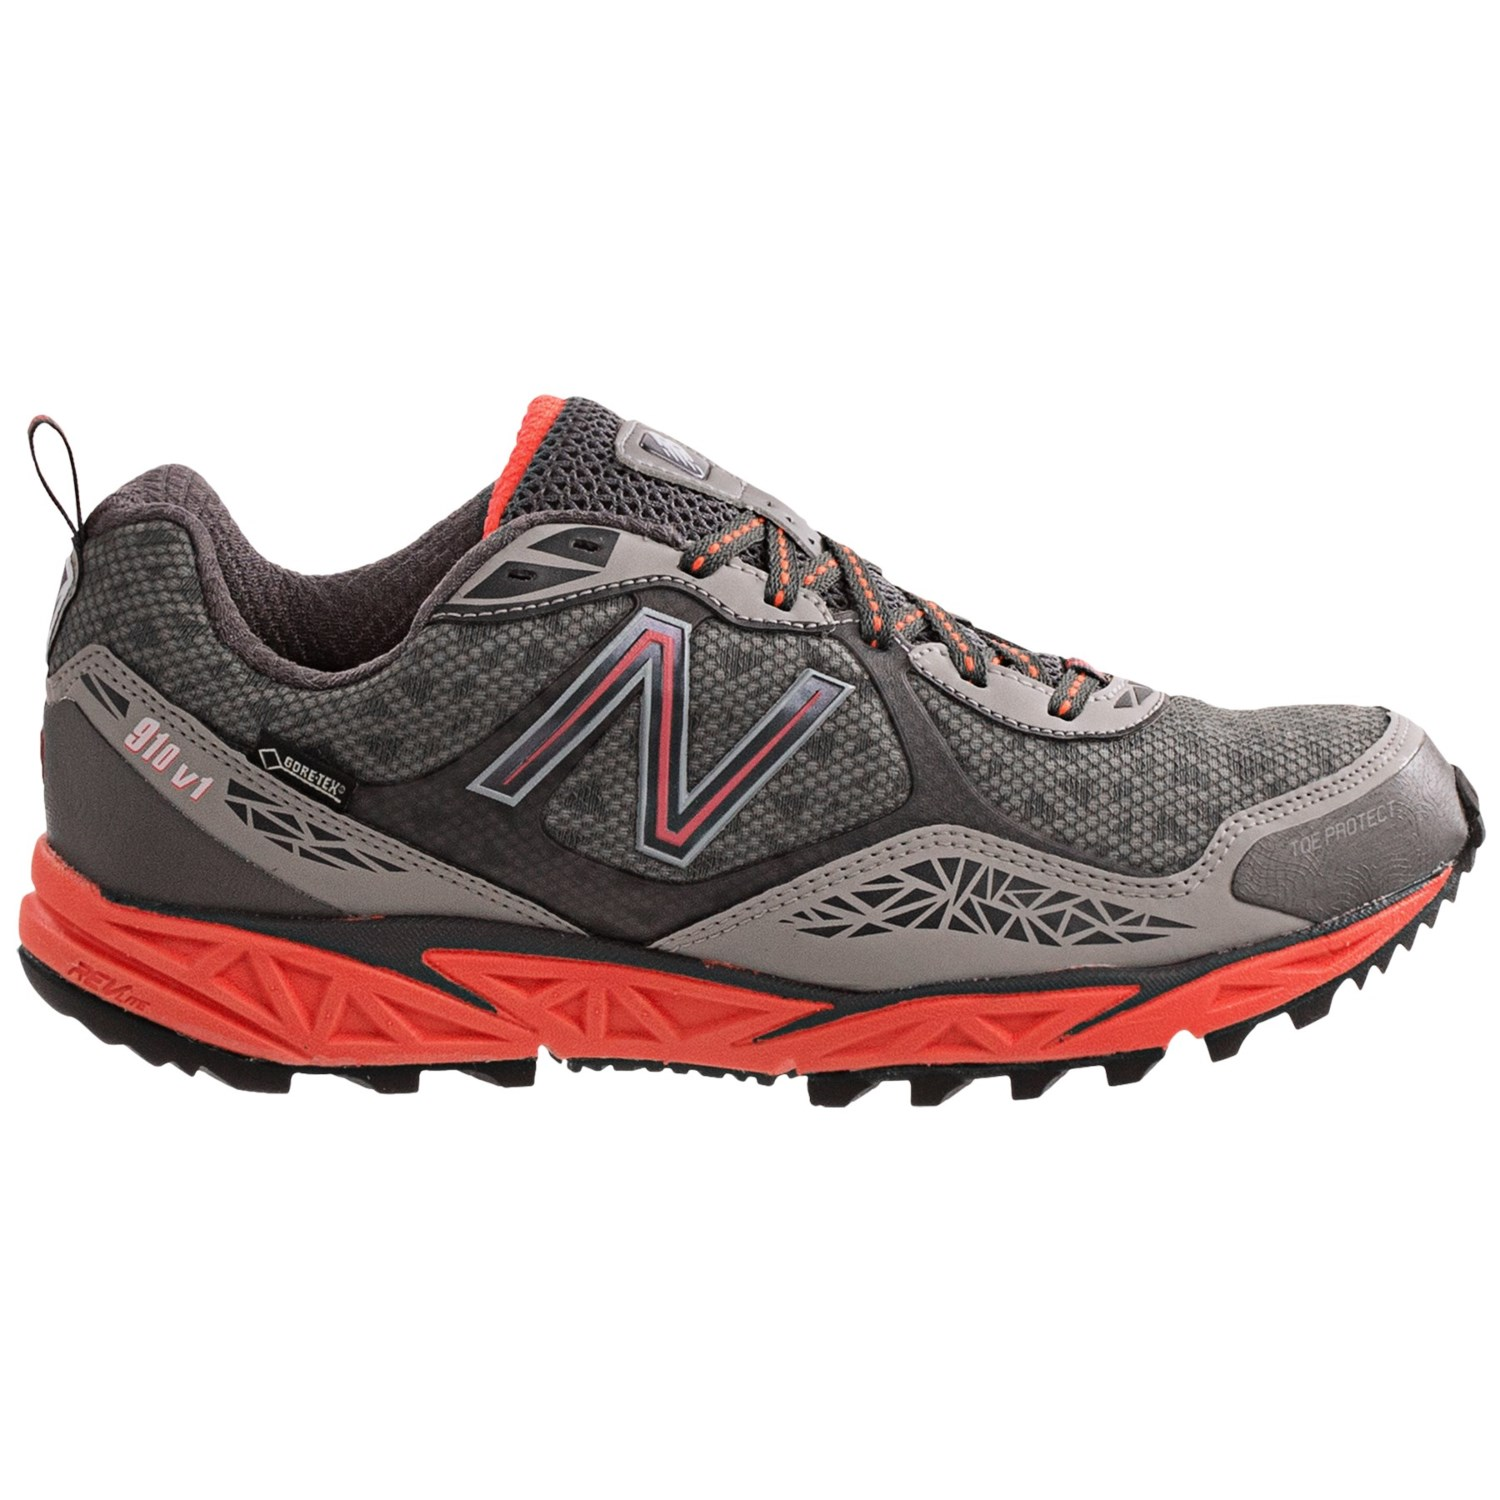 Gore Tex New Balance Running Shoes